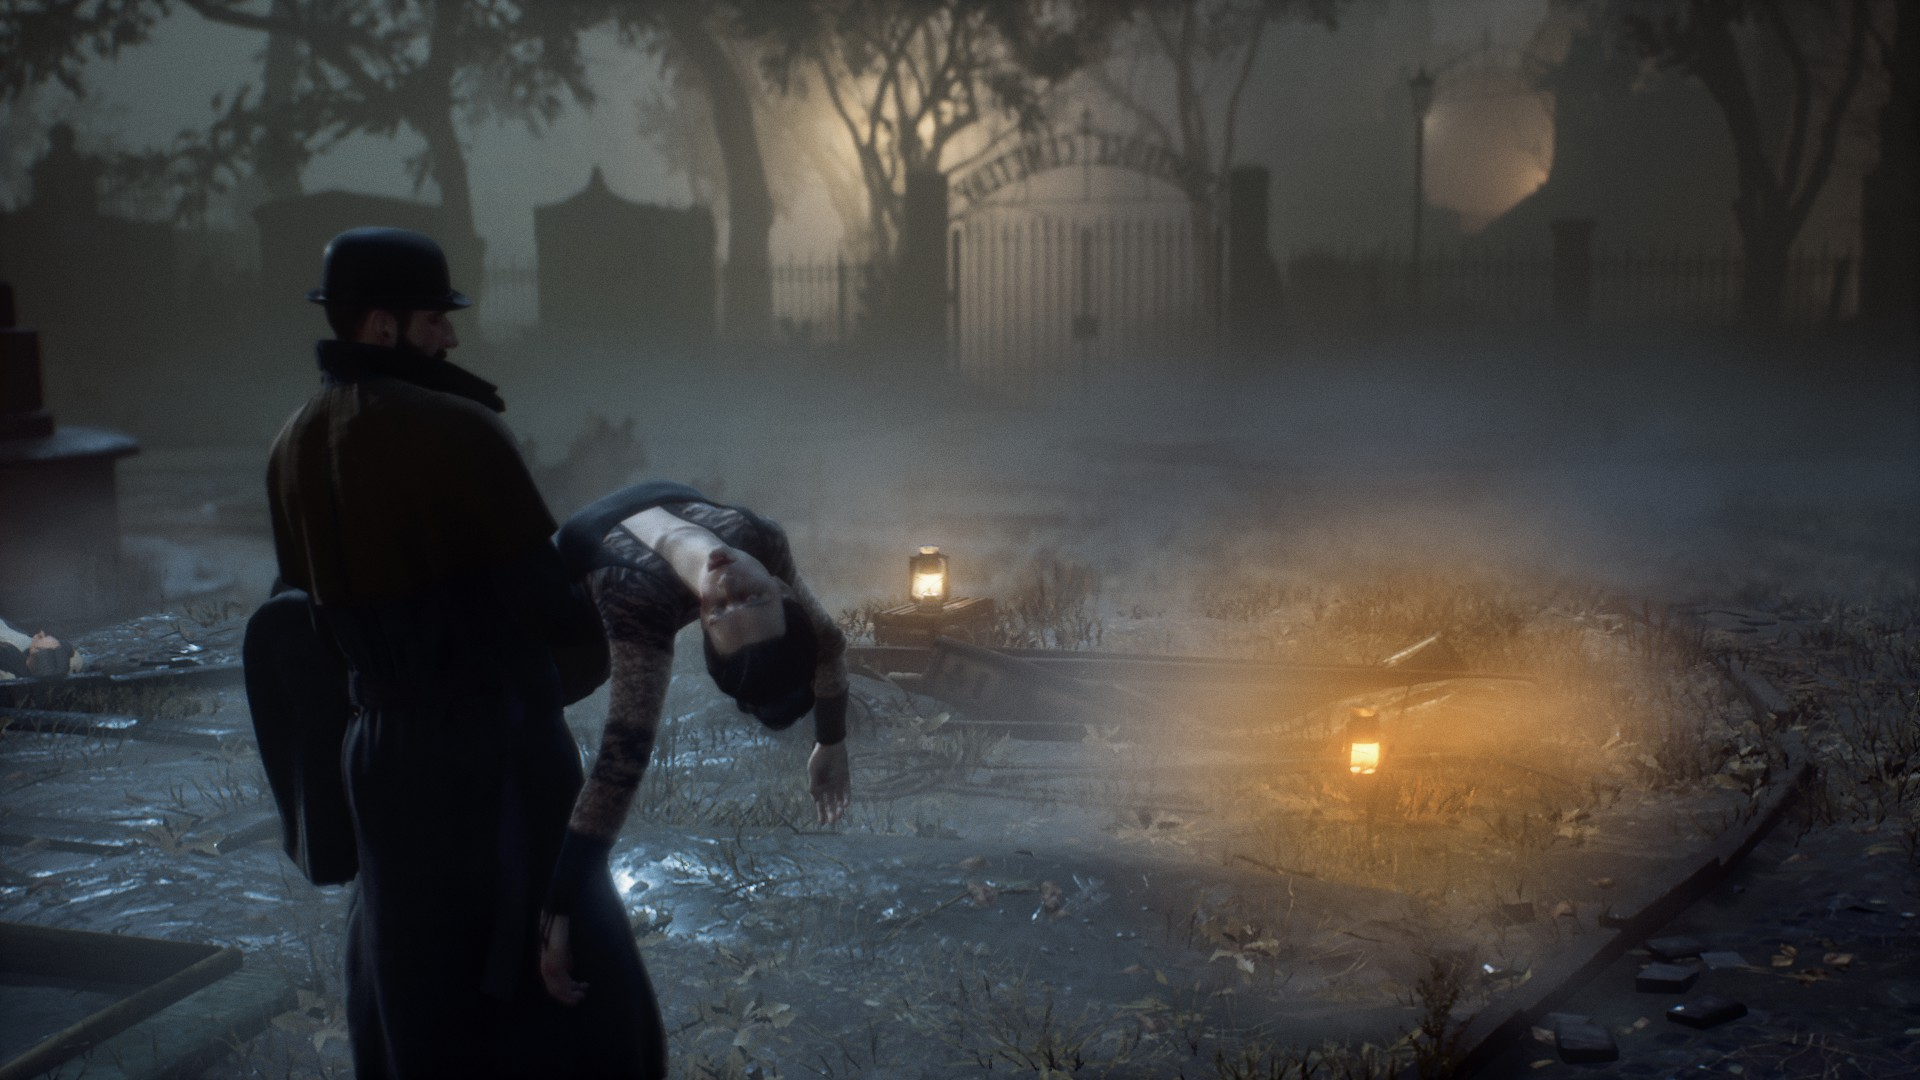 Become a true Vampyr and experience a stunning story